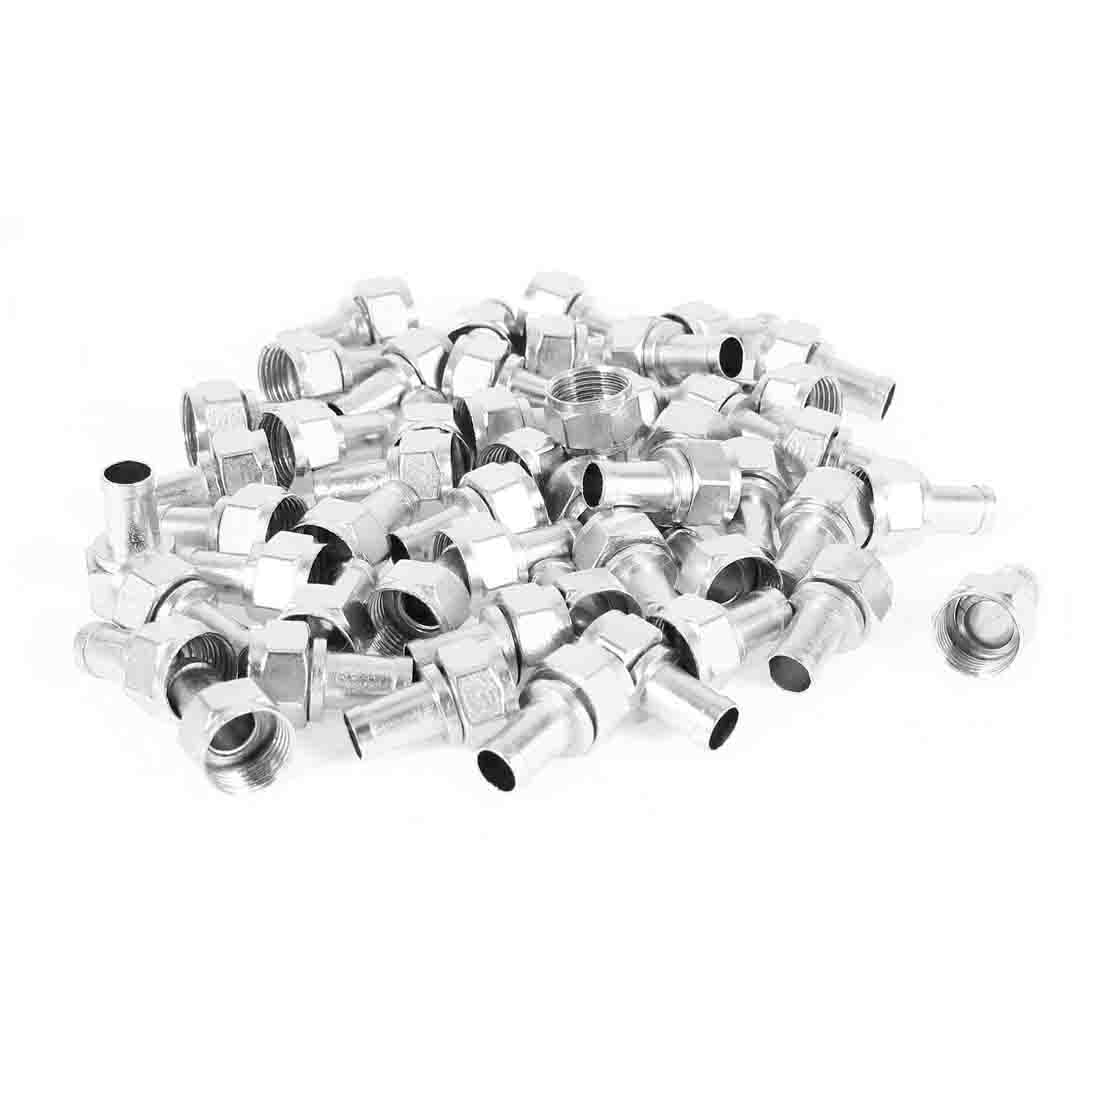 50 Pcs Screw On Coax F-Type Male Connector Adapter Silver Tone for RG6 Cord